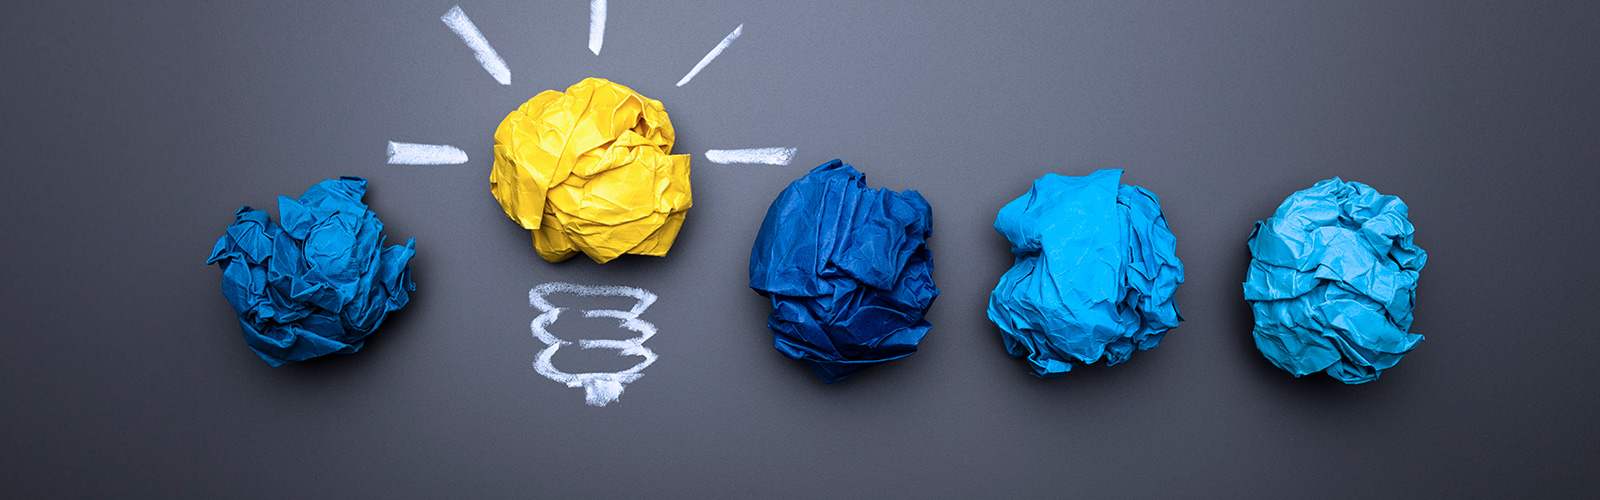 Five pieces of crumpled up pieces of paper with one depicting a light bulb.